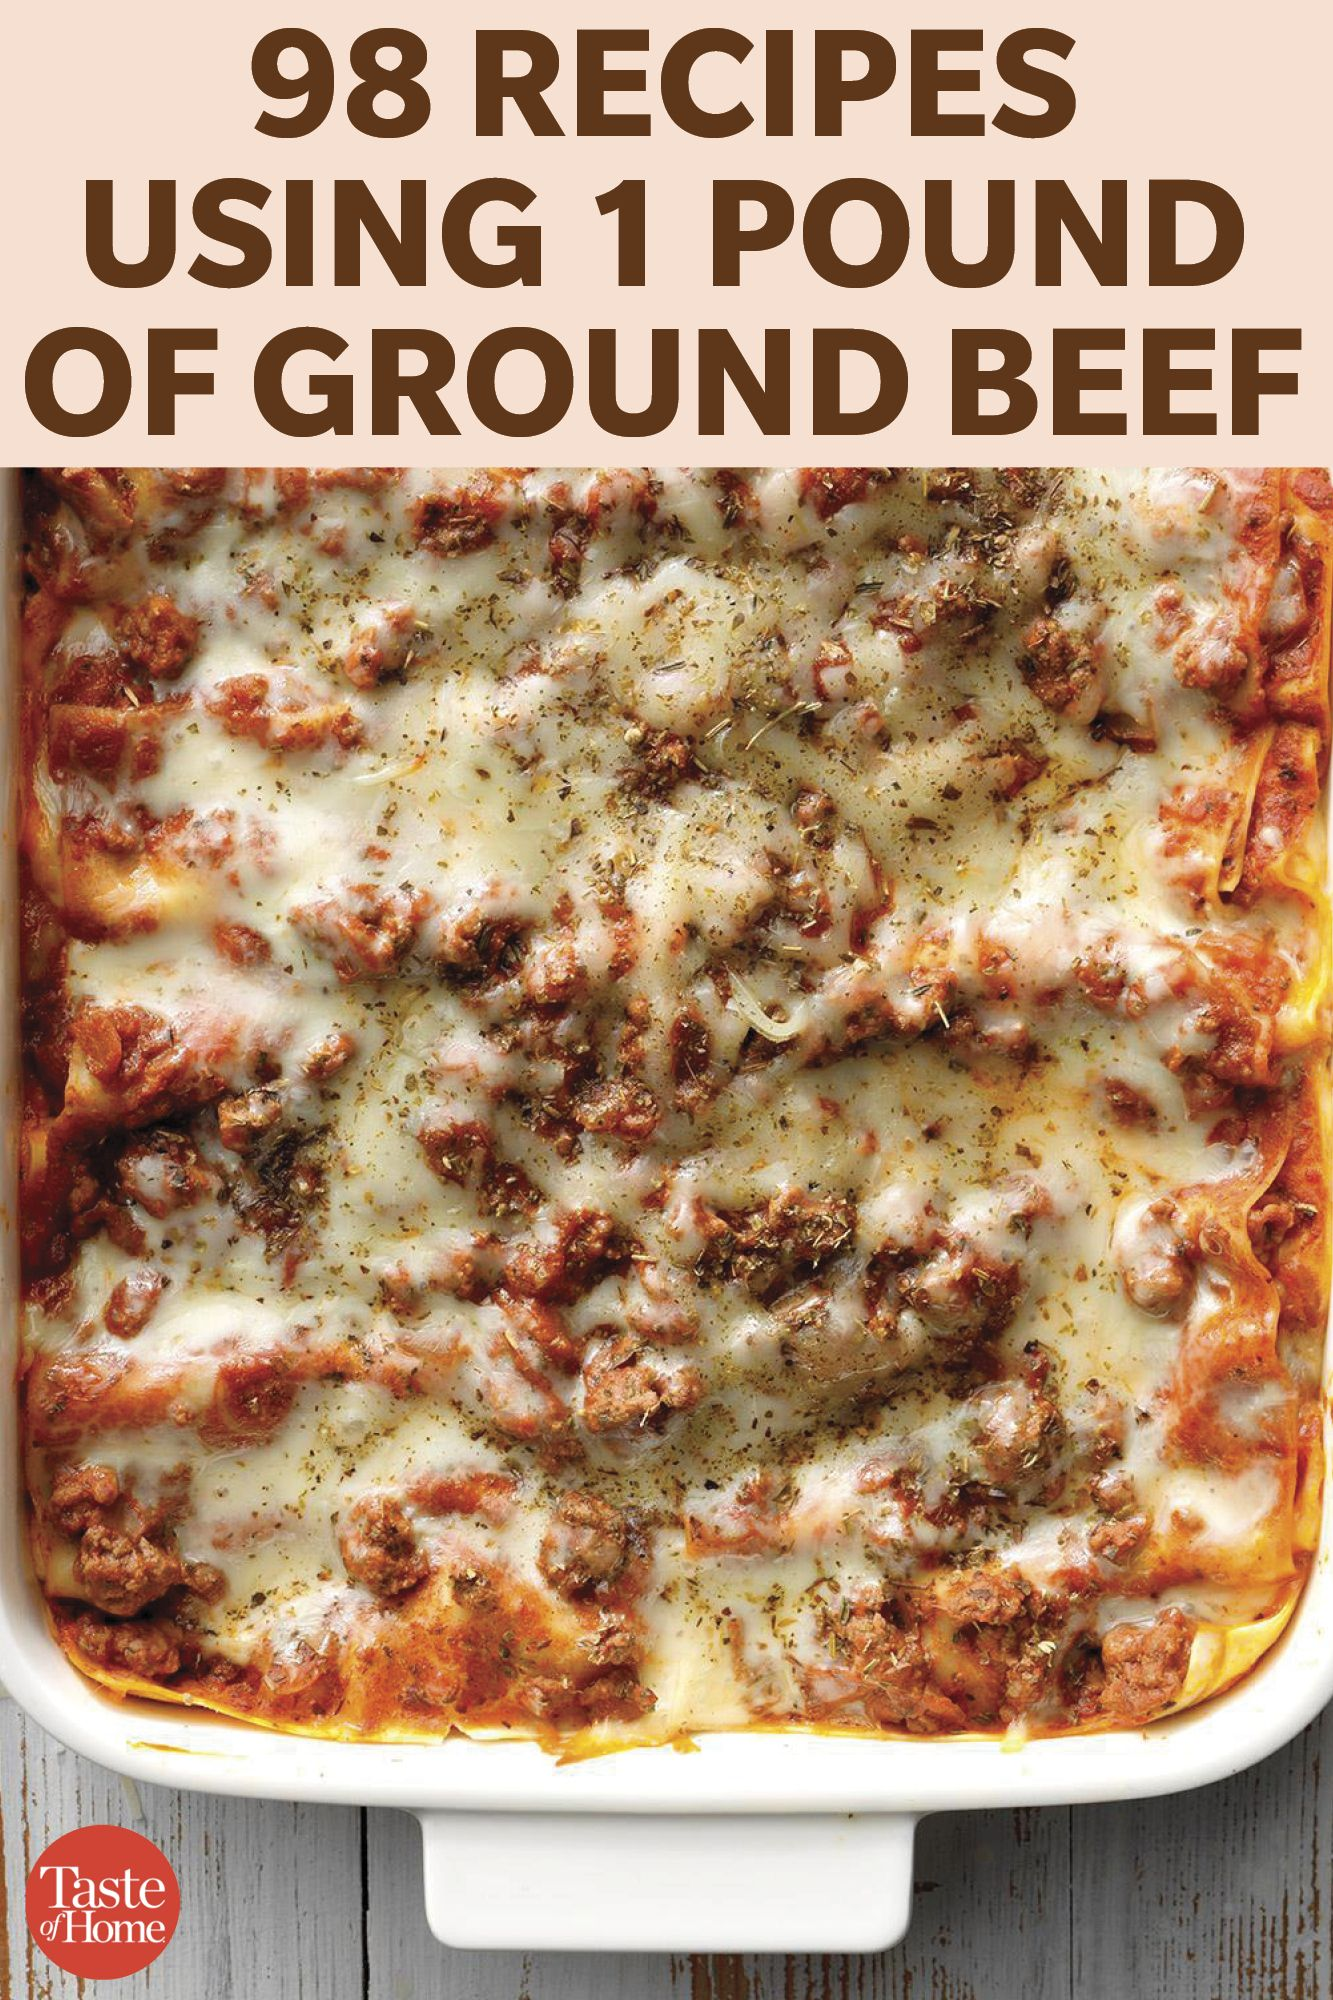 101 Recipes Using 1 Pound Of Ground Beef In 2020 Ground Beef Recipes Healthy Meat Dinners Healthy Beef Recipes